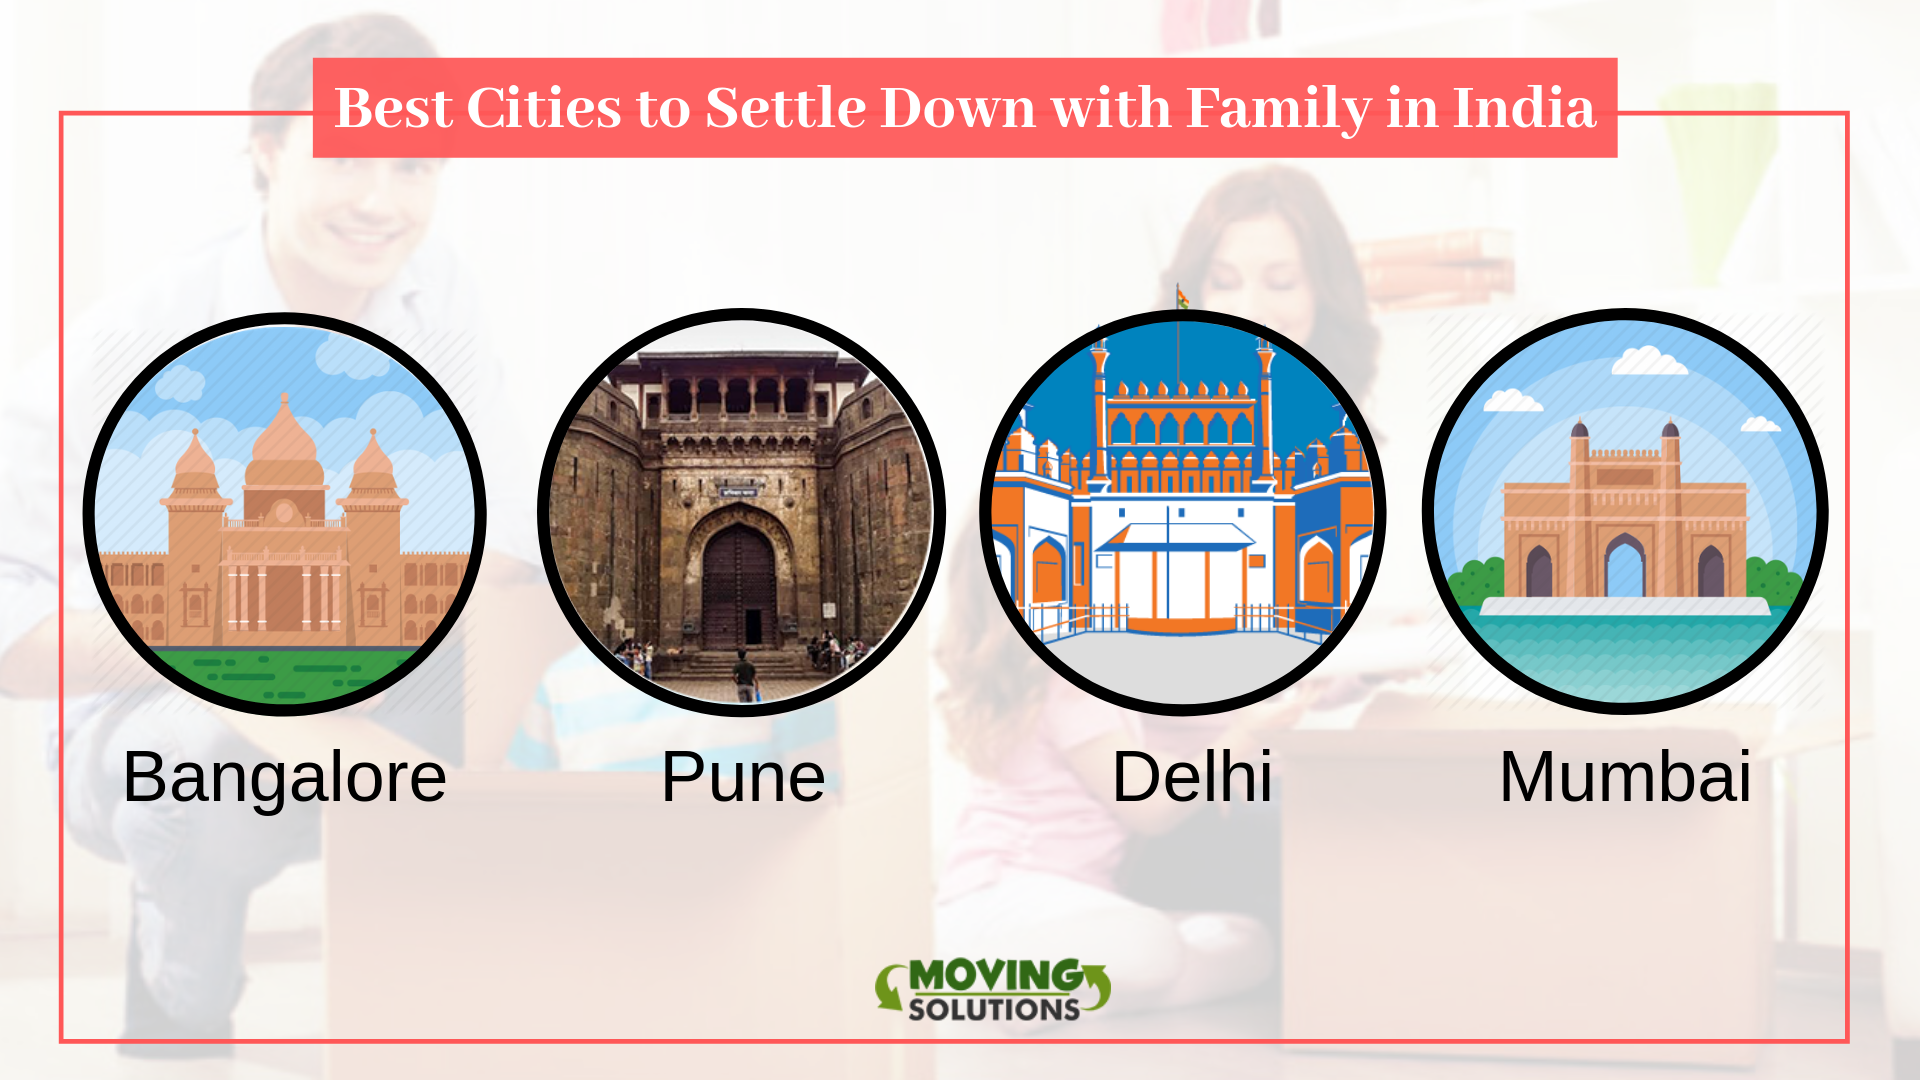 Best Cities to Settle Down with Family in India | Moving solutions